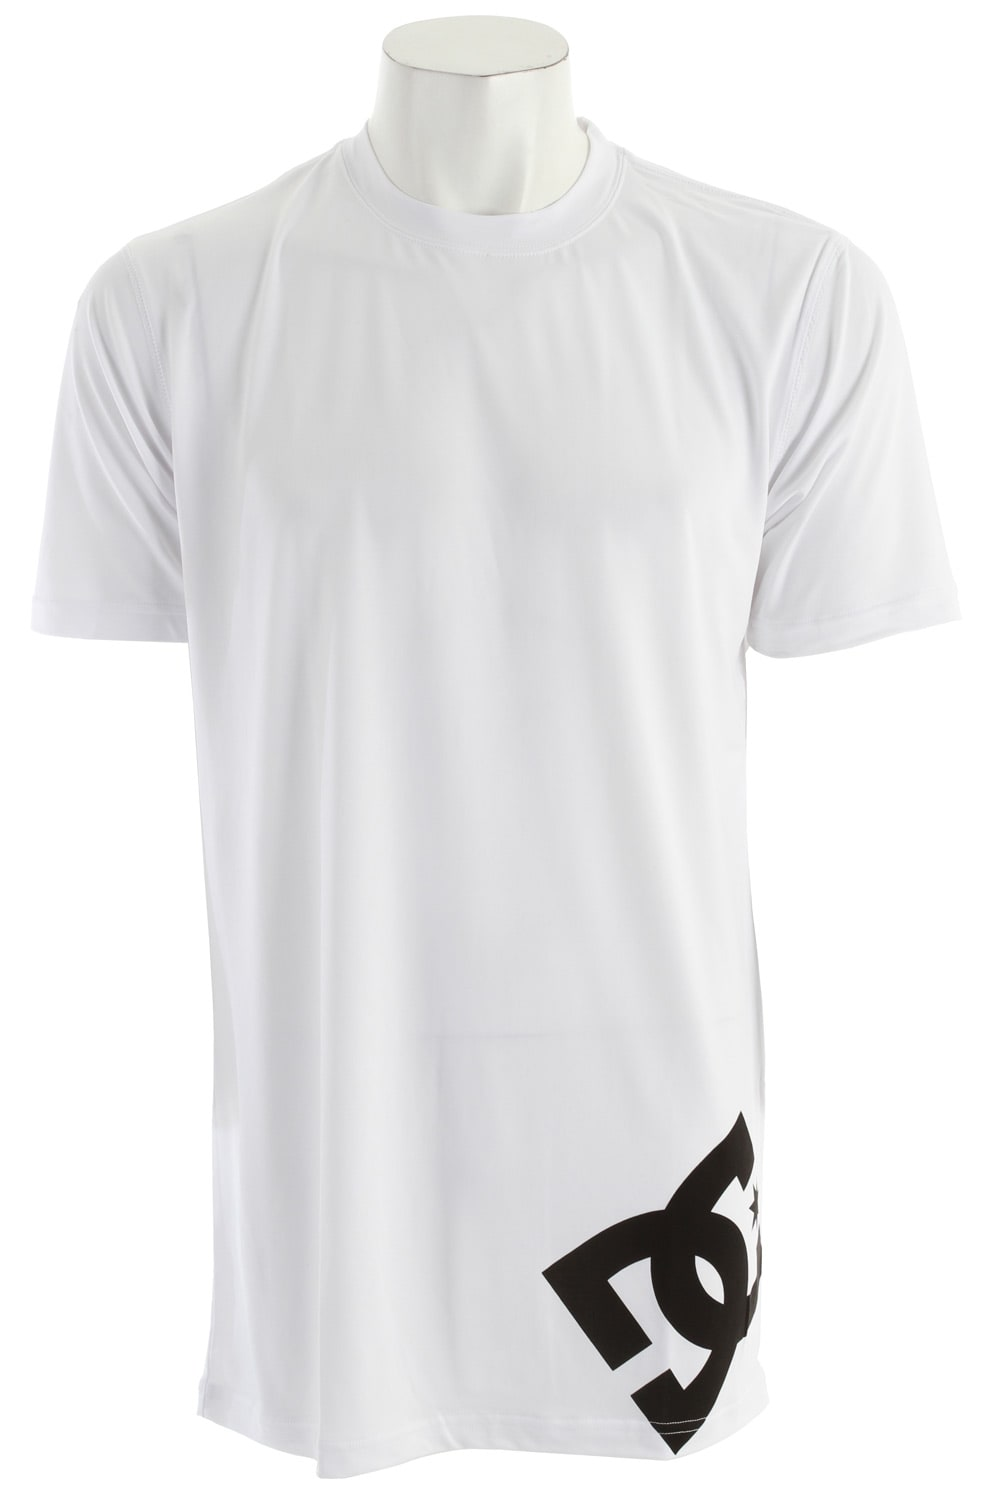 Shop for DC Aravis Baselayer Top White - Men's